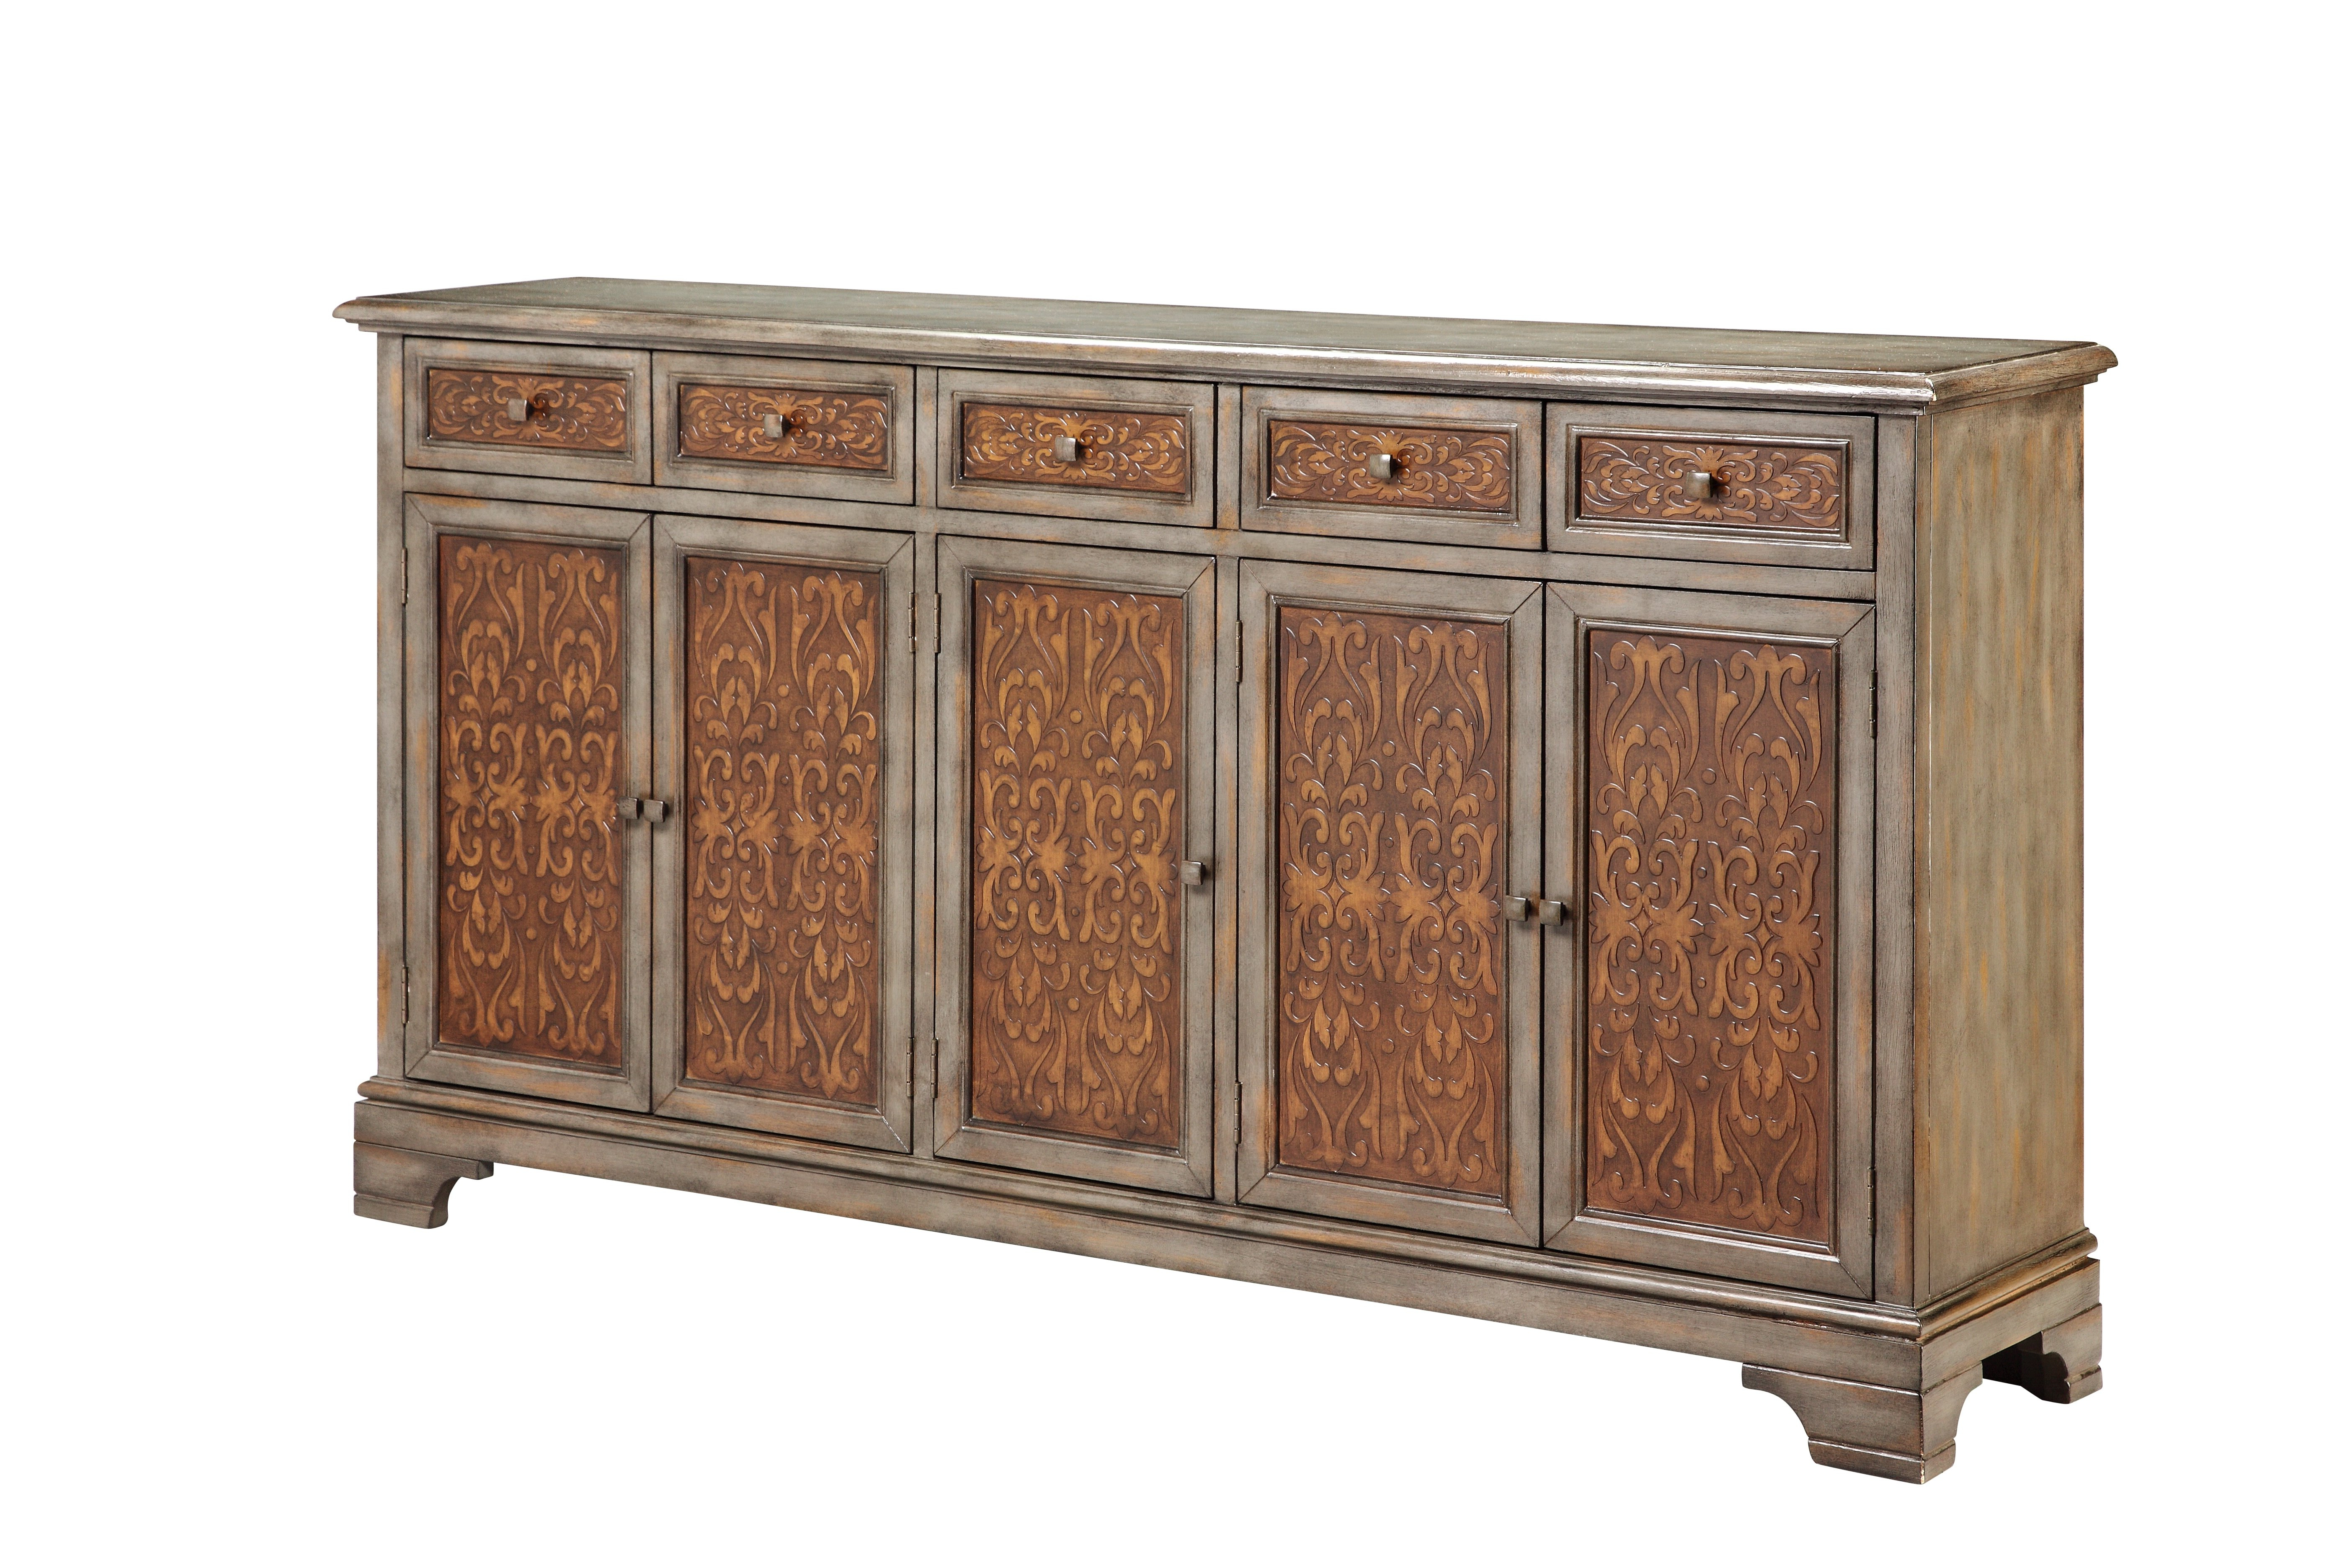 2019 World Menagerie Sideboards & Buffets You'll Love In 2019 For Armelle Sideboards (Gallery 4 of 20)